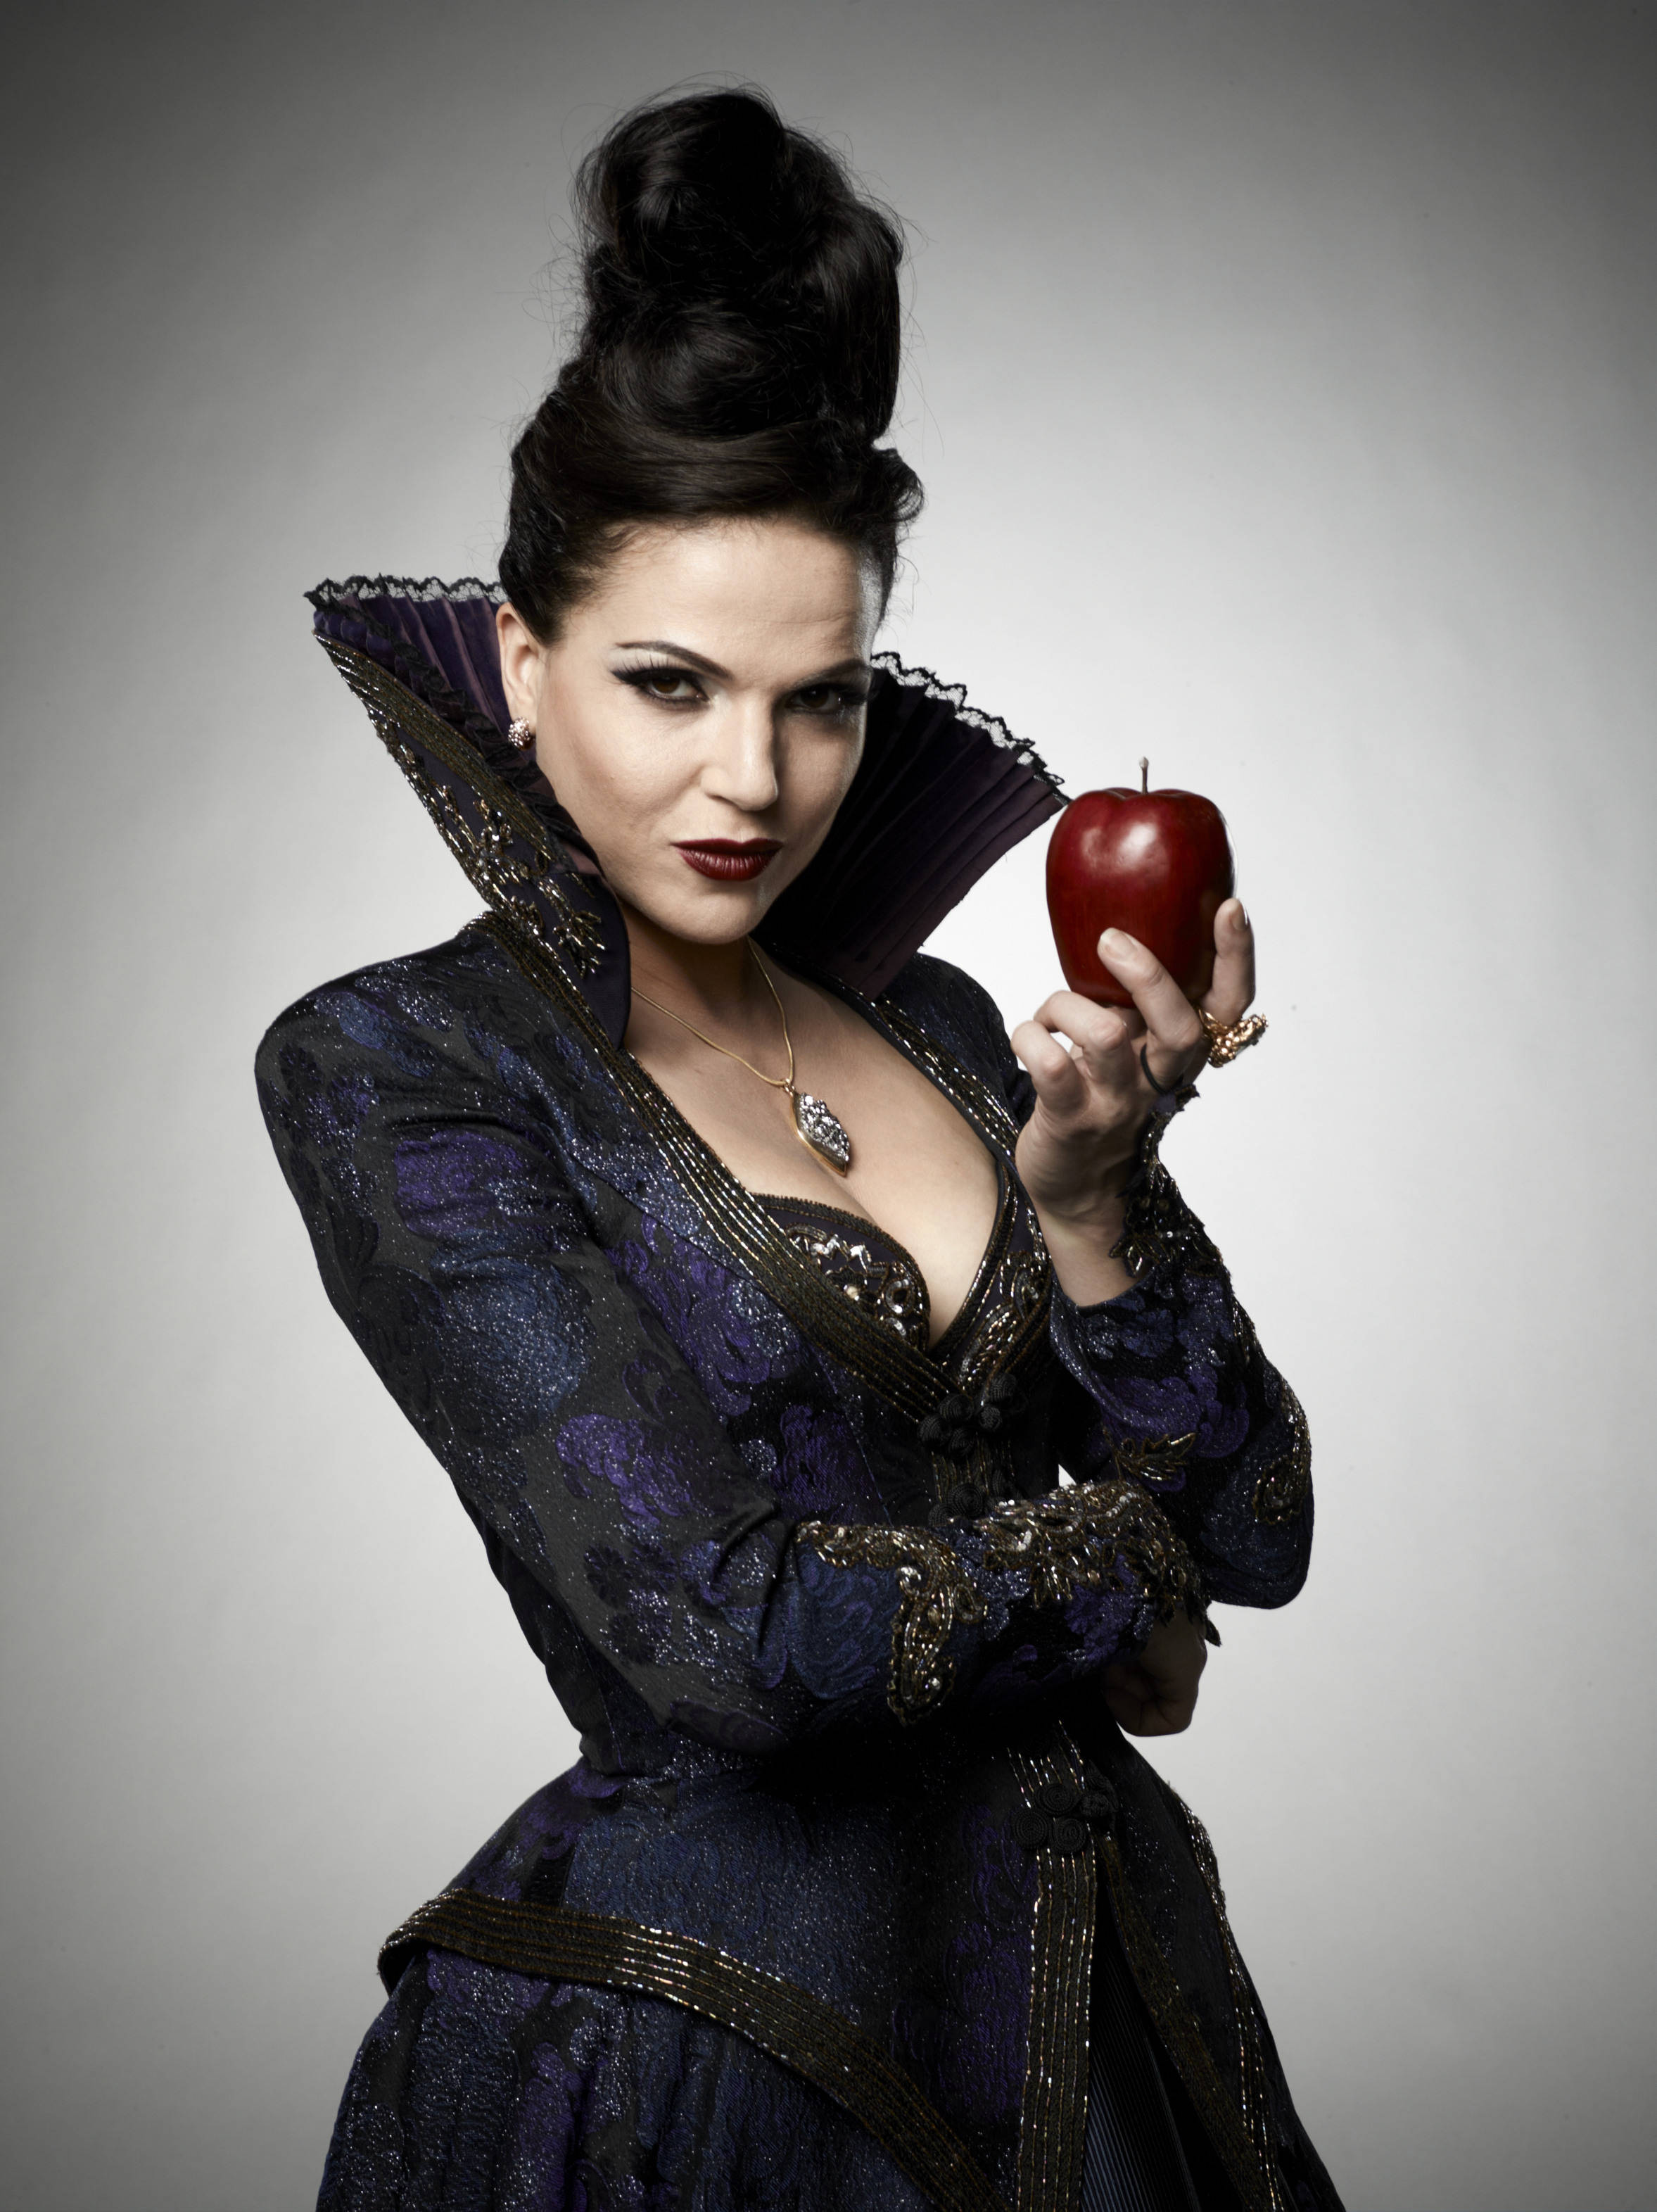 http://images6.fanpop.com/image/photos/35300000/Regina-the-evil-queen-regina-mills-35300016-2355-3143.jpg